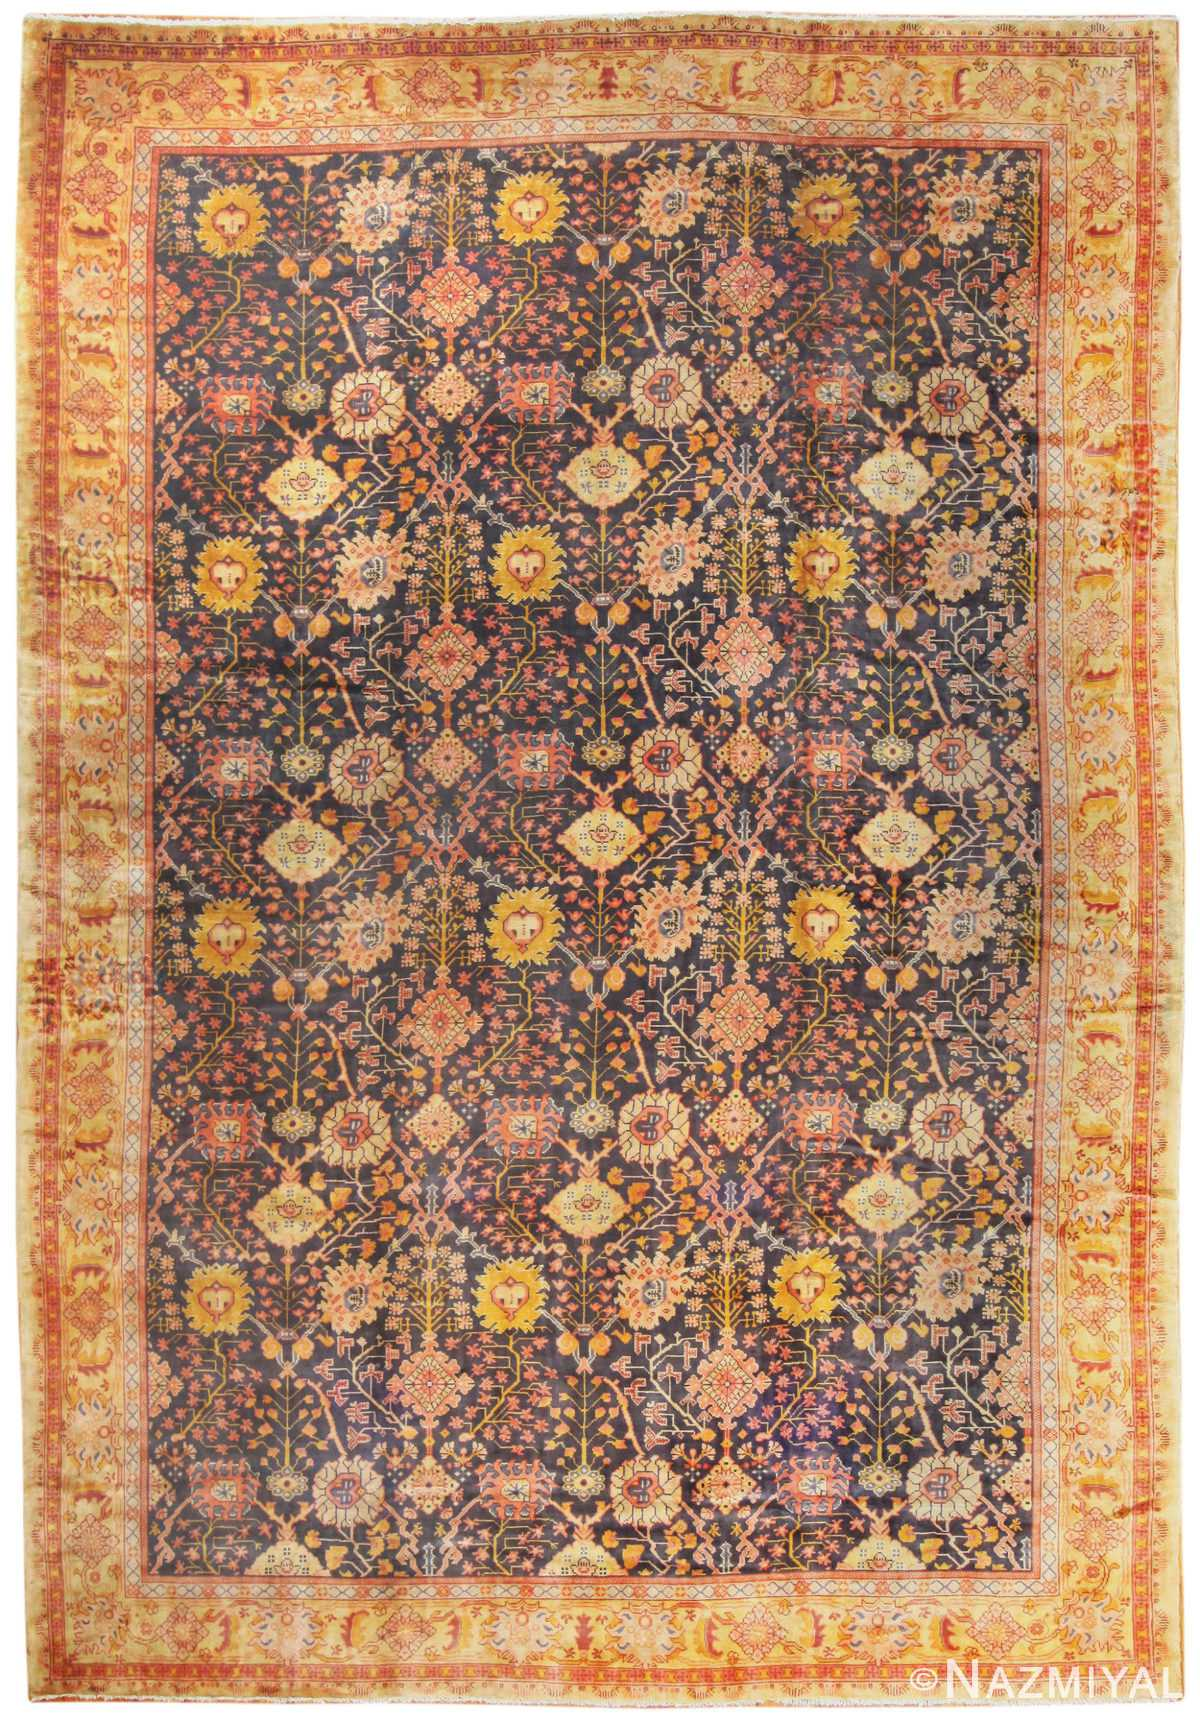 Antique Irish Arts and Crafts Rug 50336 Nazmiyal